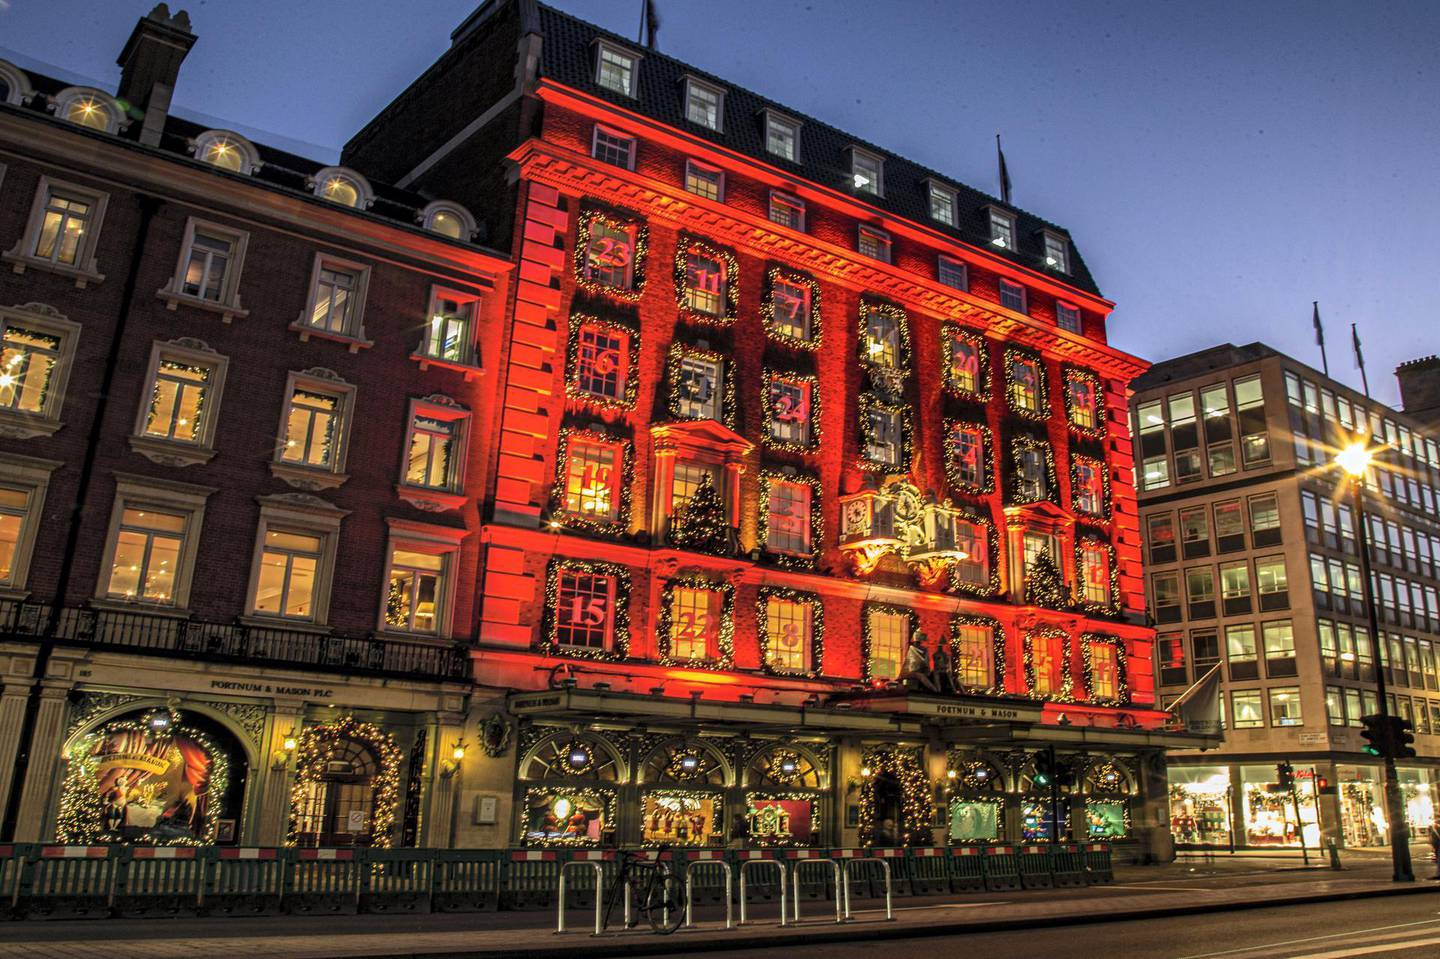 Locations in London during lockdown in the lead up to Christmas 2020. Fortnum and Masons